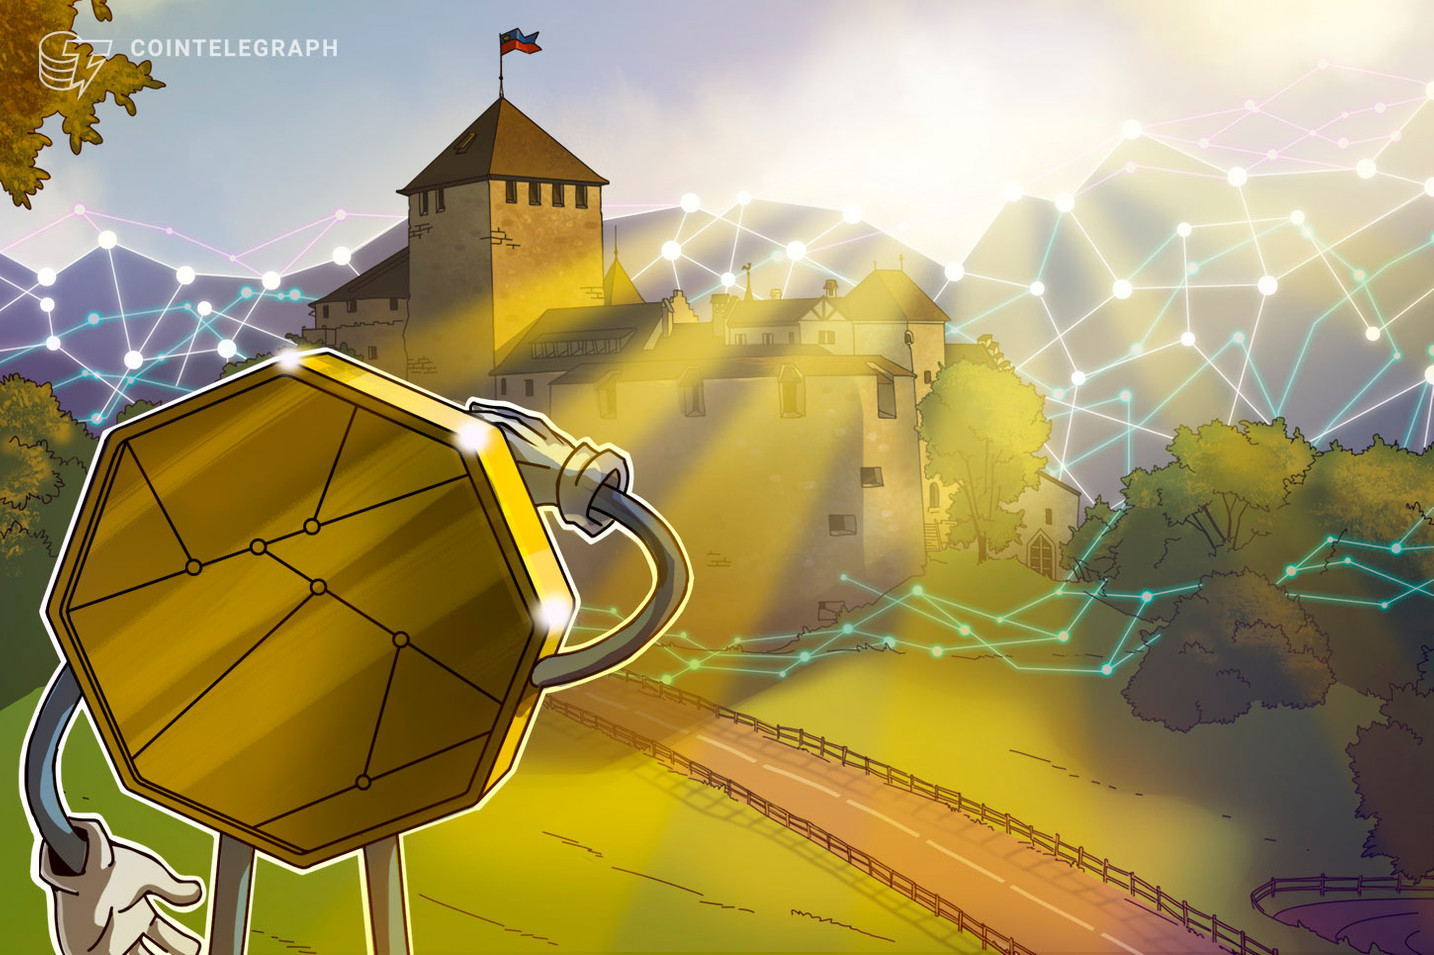 Liechtenstein-Based Crypto Fund Manager Receives Backing from Dubai Royal